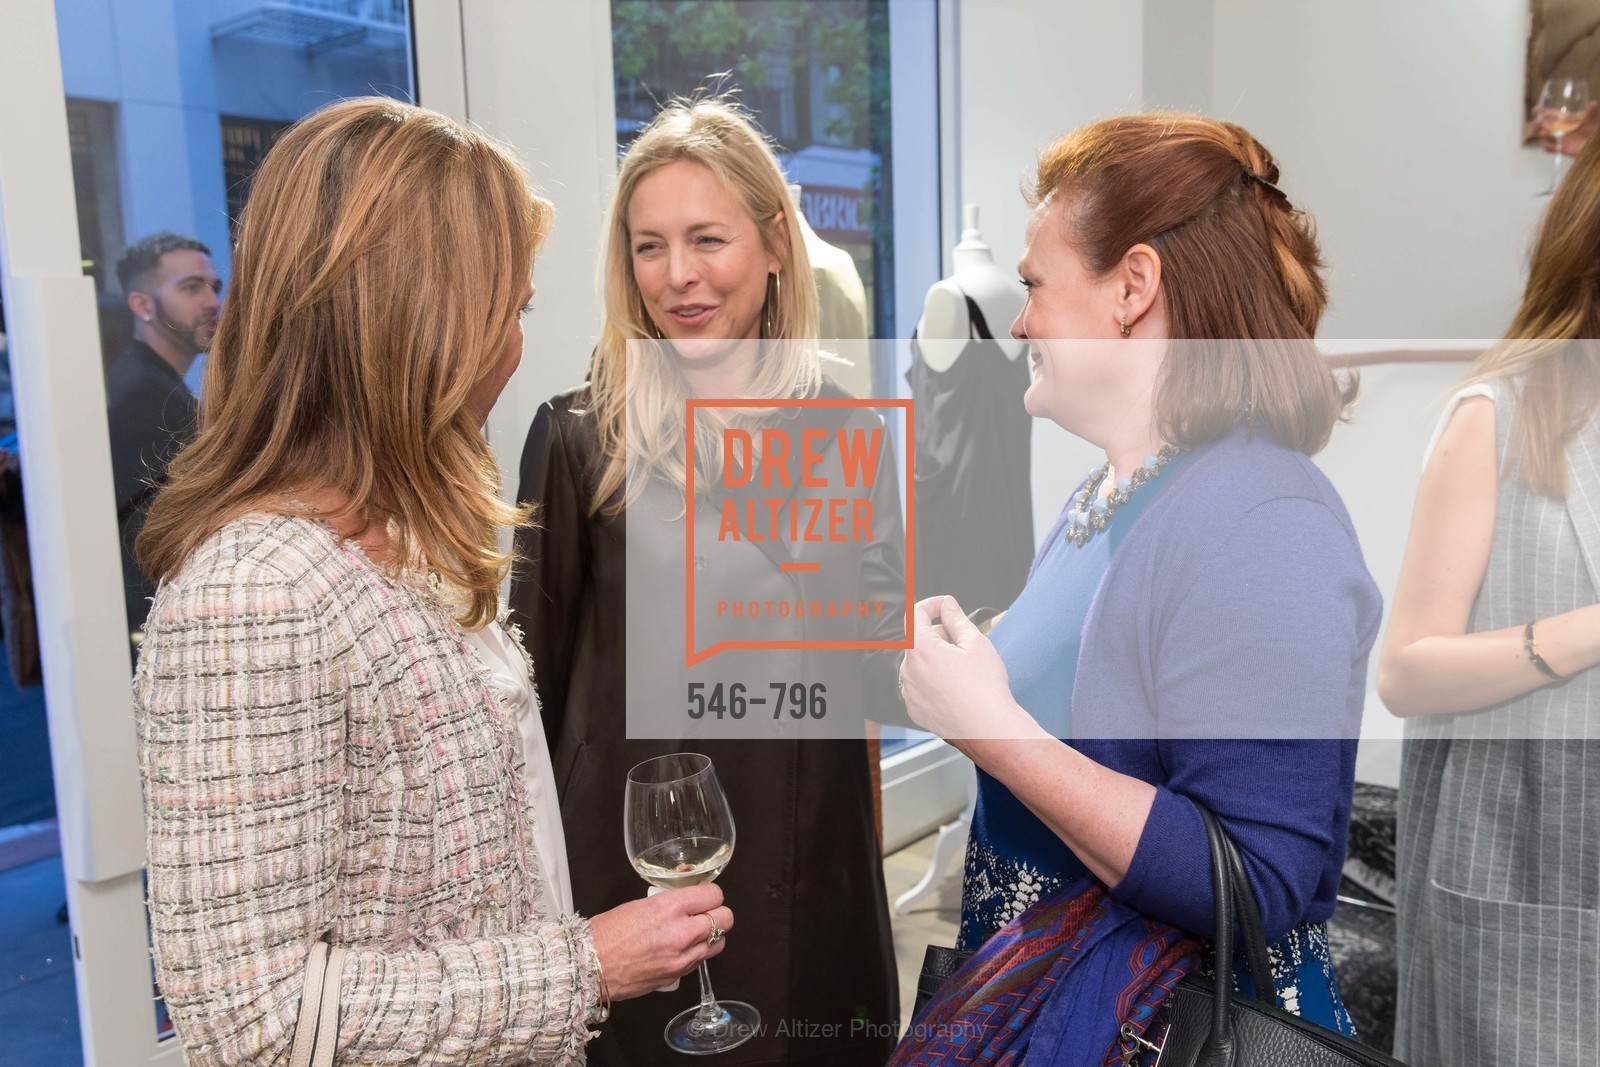 Christine Aylward, Kate Chung, Jennifer Raiser, MAISON MARGIELA San Francisco Boutique Grand Opening Event, US, April 24th, 2015,Drew Altizer, Drew Altizer Photography, full-service agency, private events, San Francisco photographer, photographer california